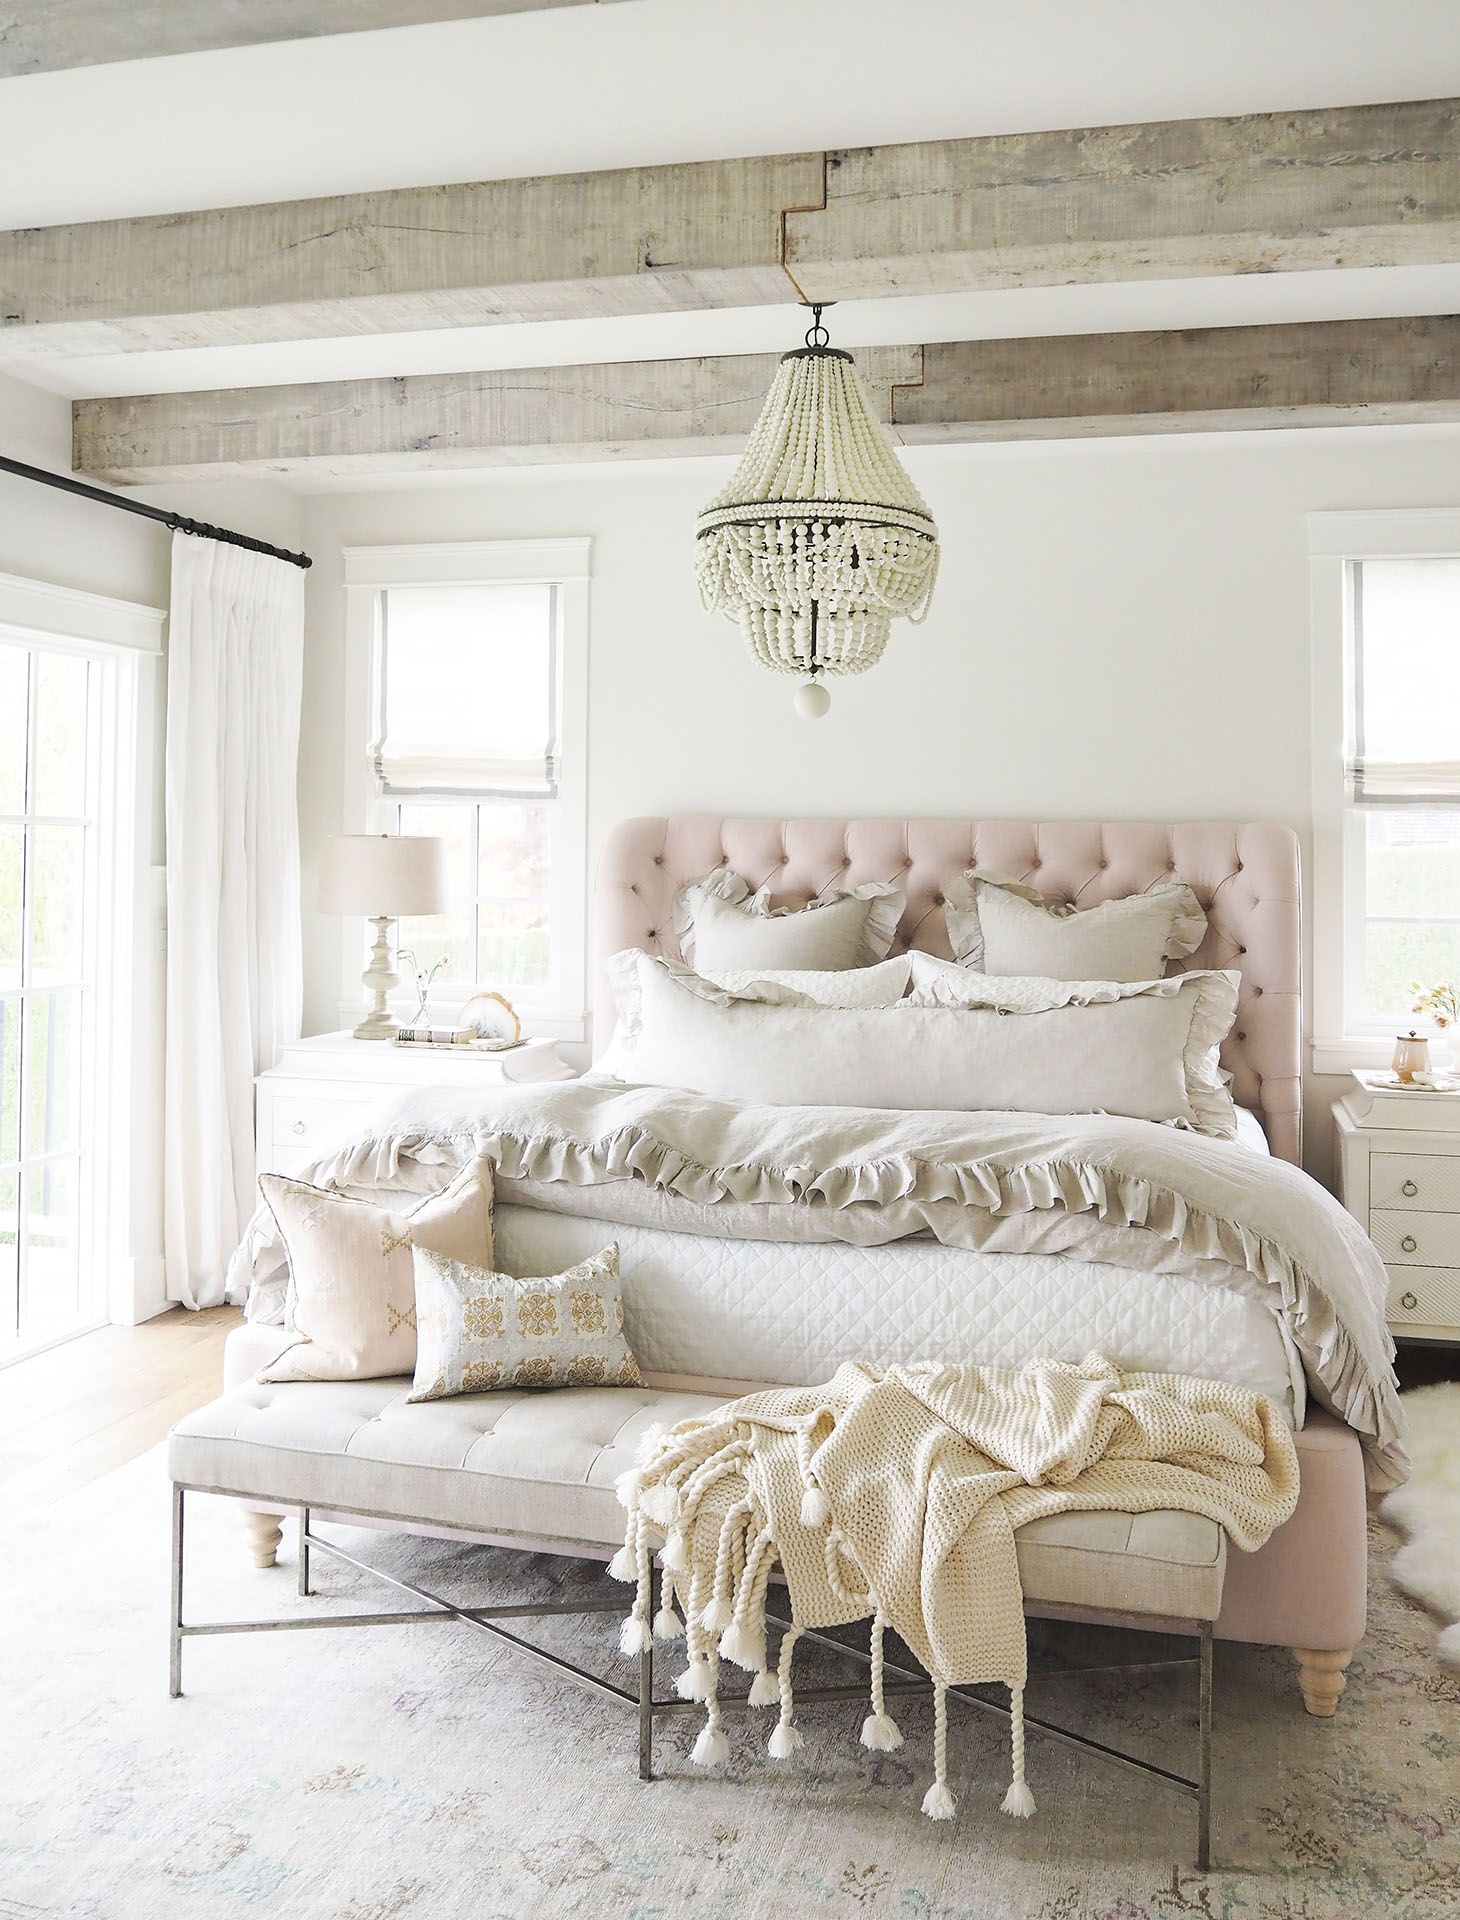 Revealed: My Dreamy Pink Bedroom (And A Giveaway